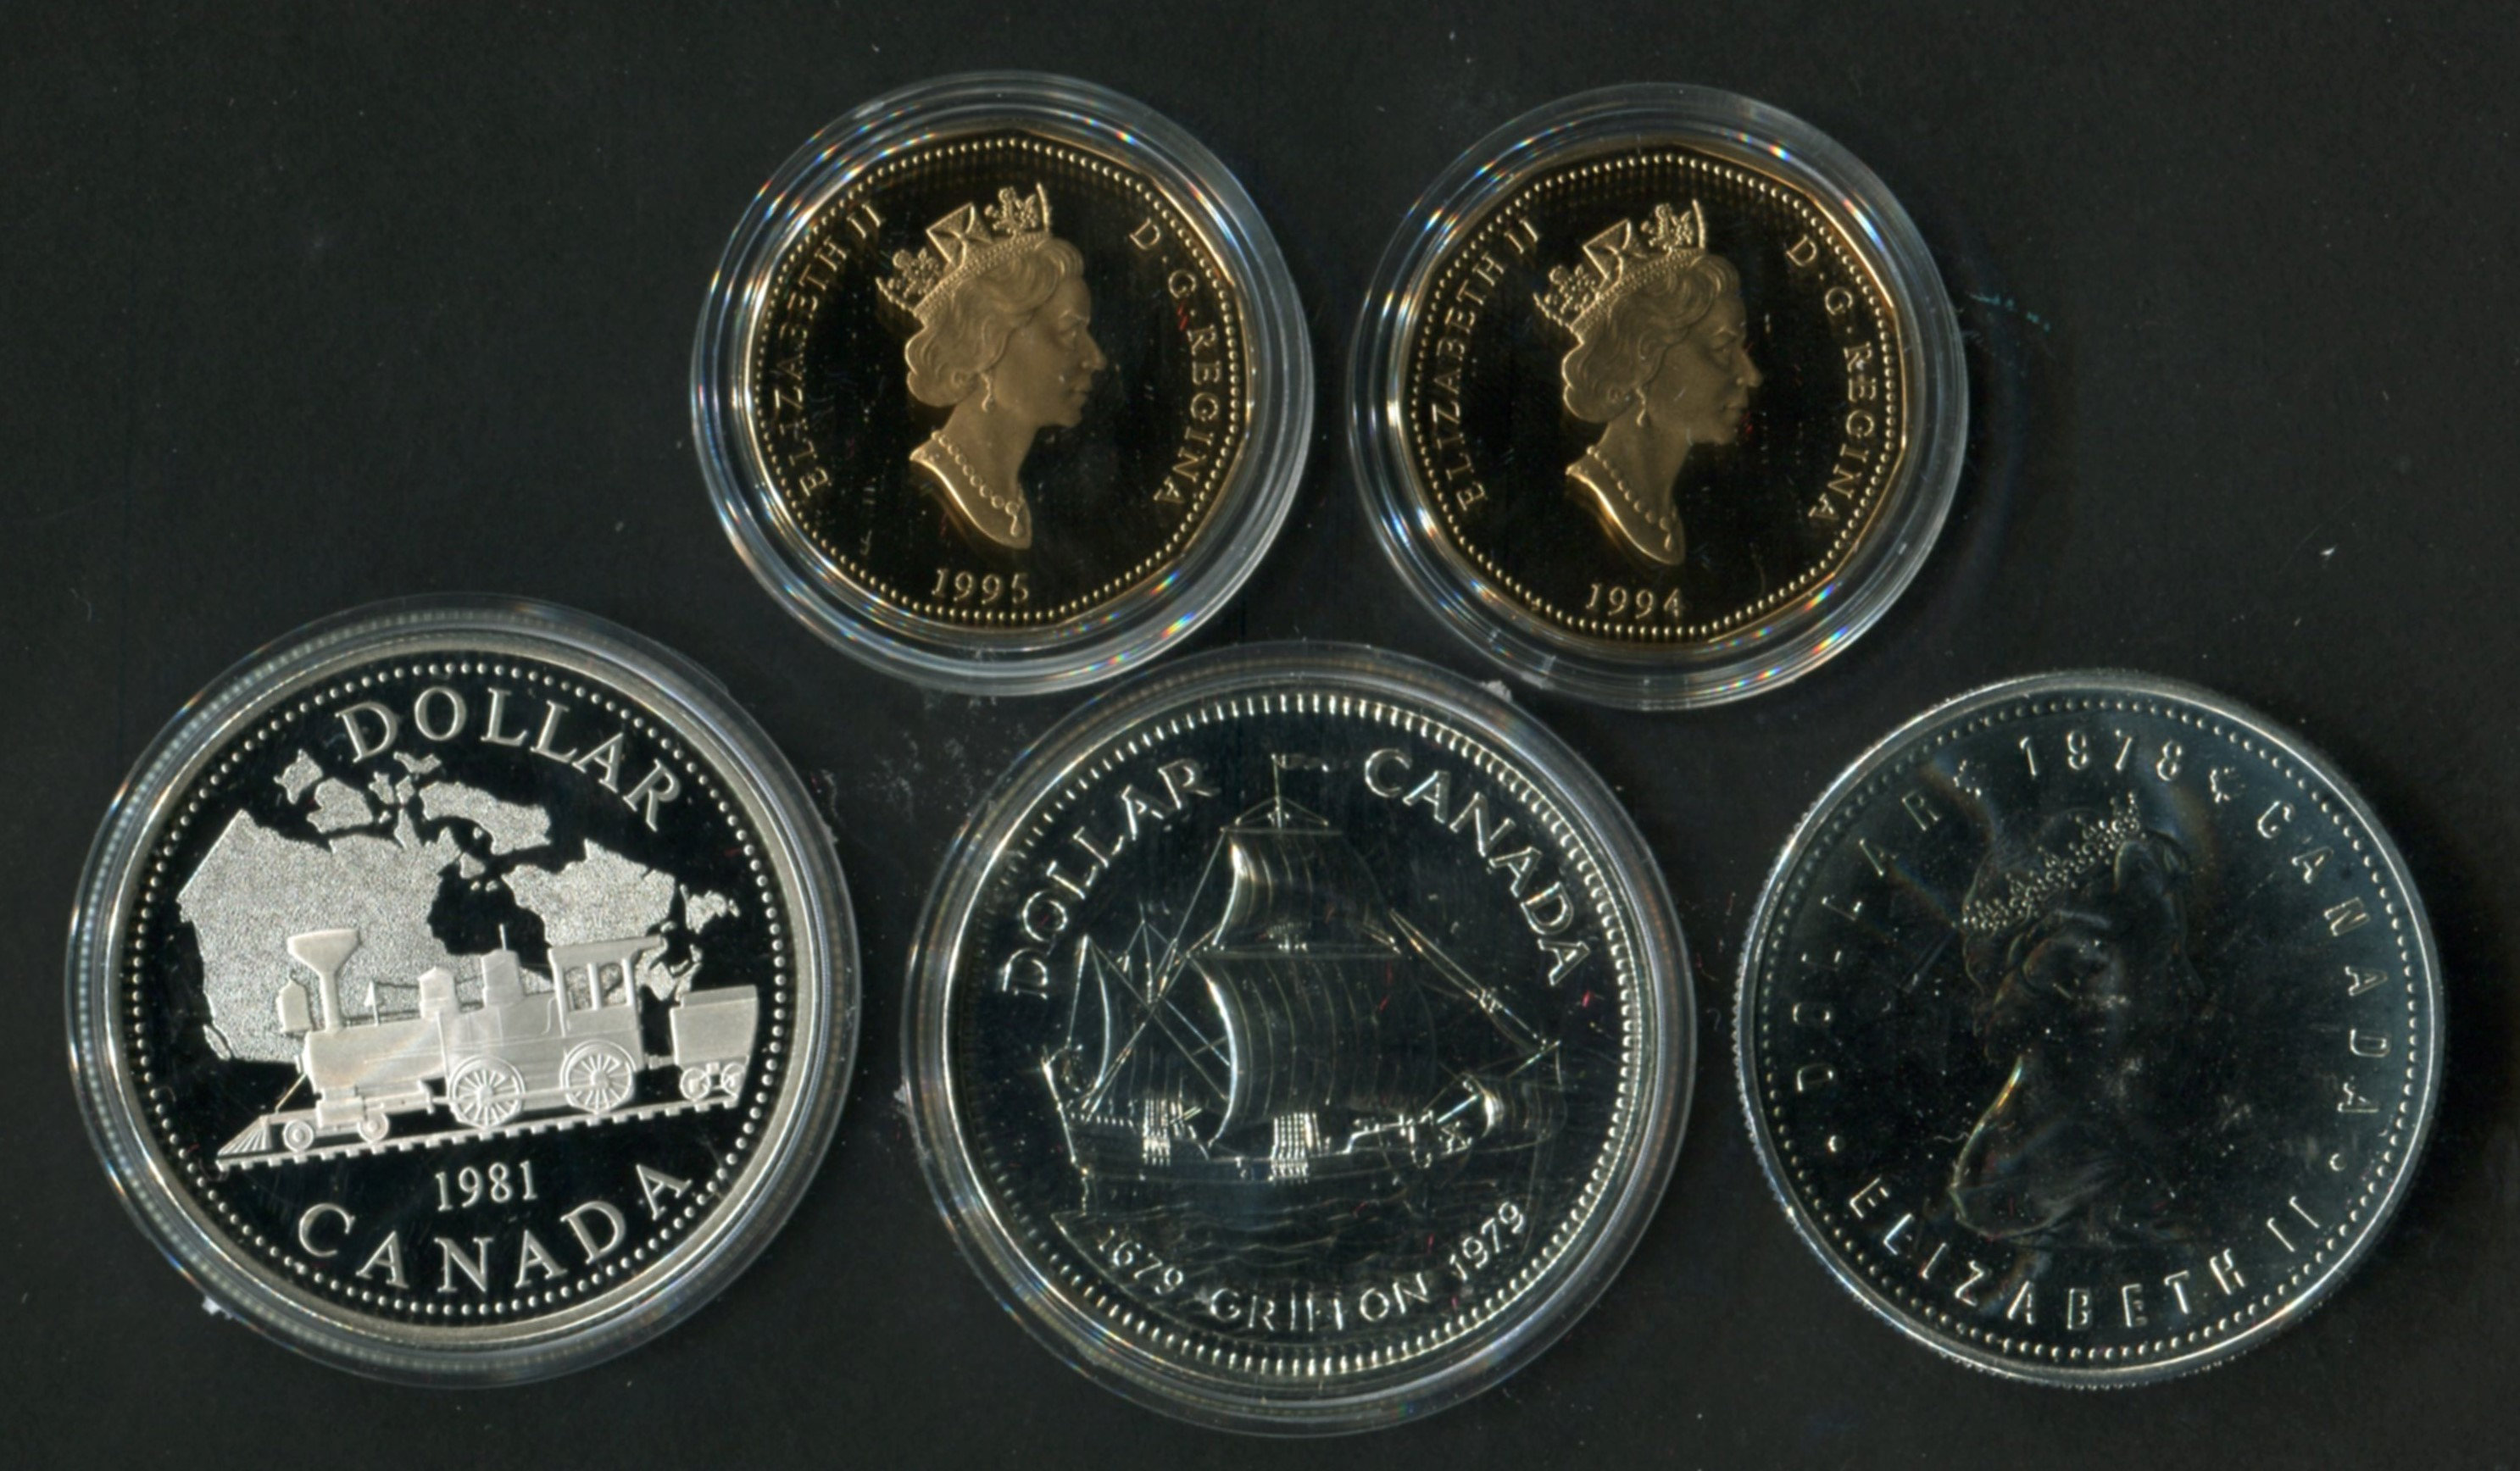 1998 Canada Silver Nickel Graded as Proof From Original Set